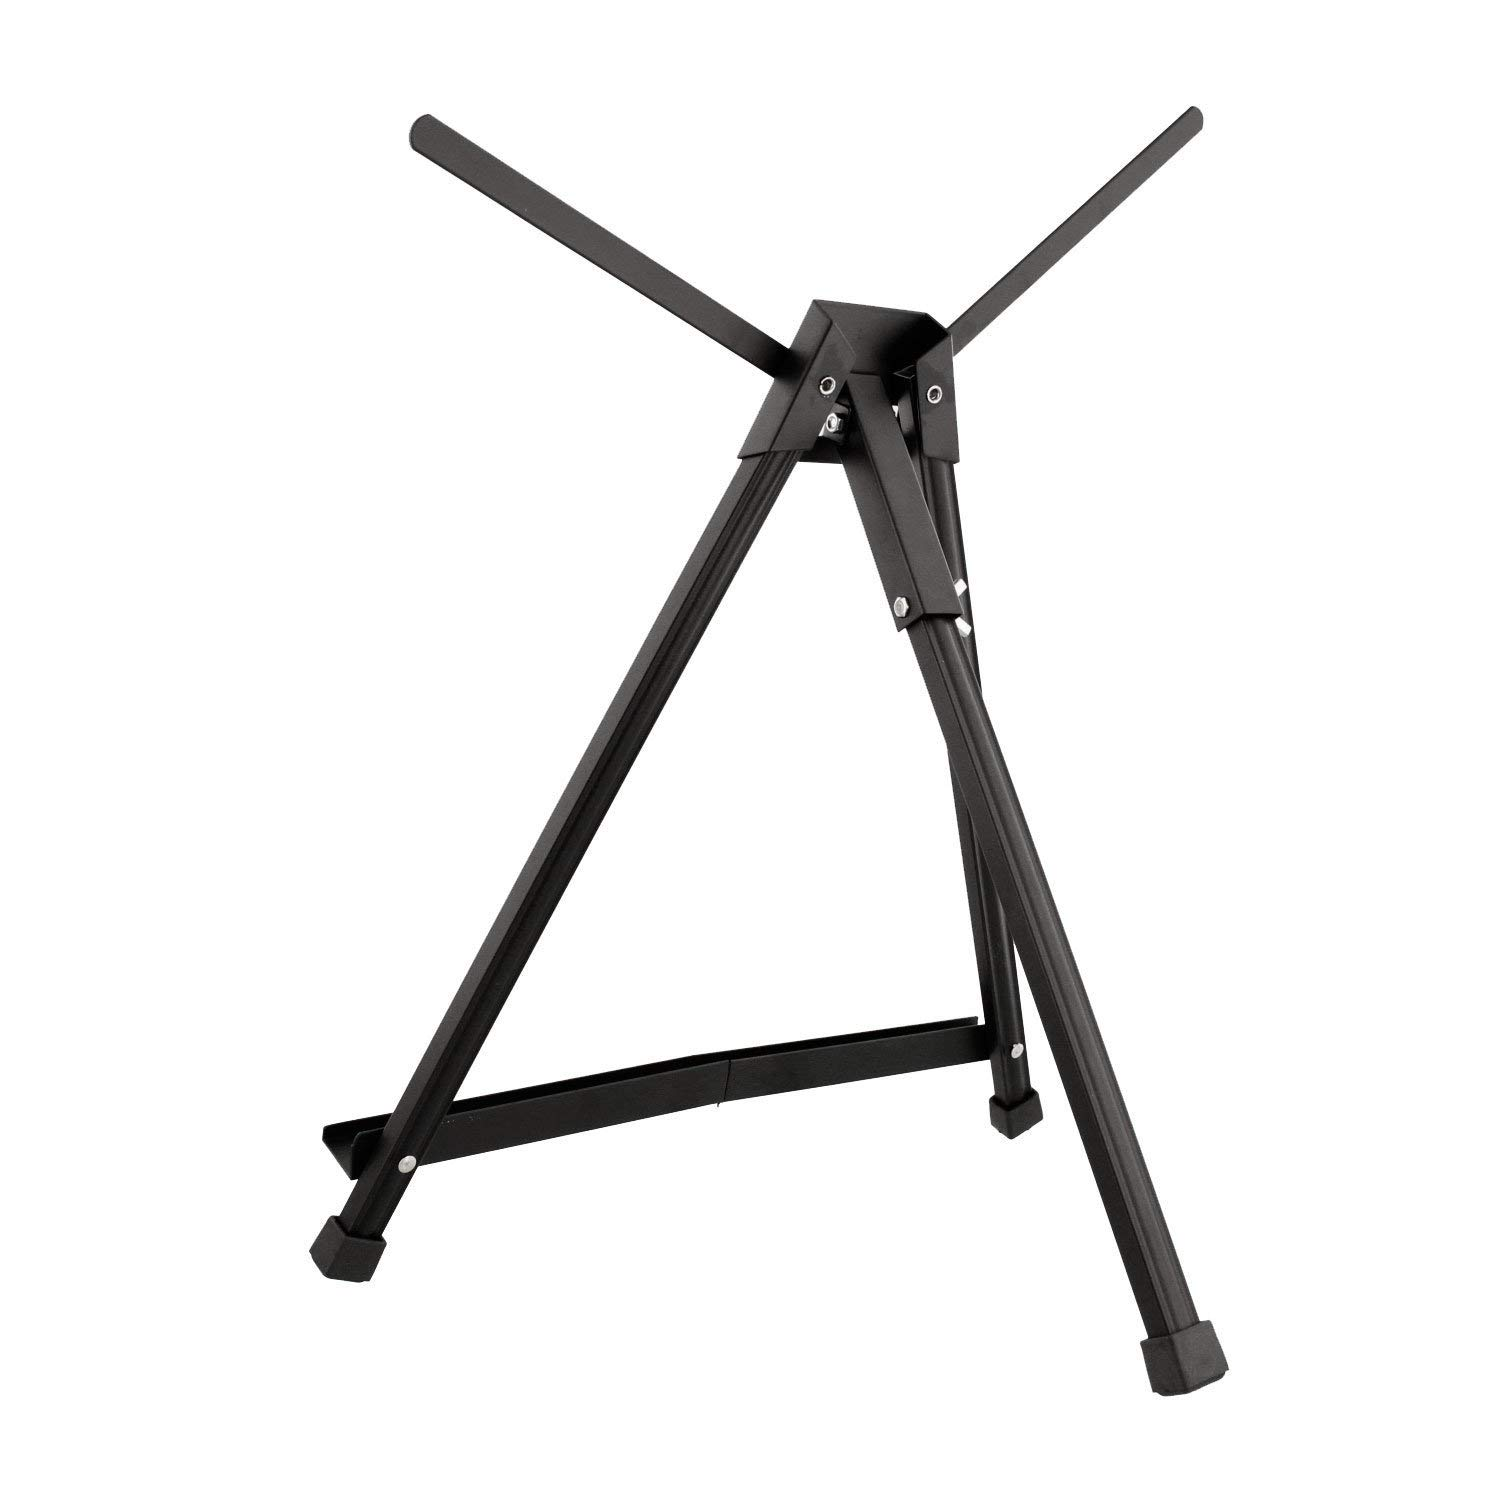 4 PCS CONDA Aluminum Art Table Easel Tri-Pod Display with Rubber Feet,Black,20 x 24 Double Arms